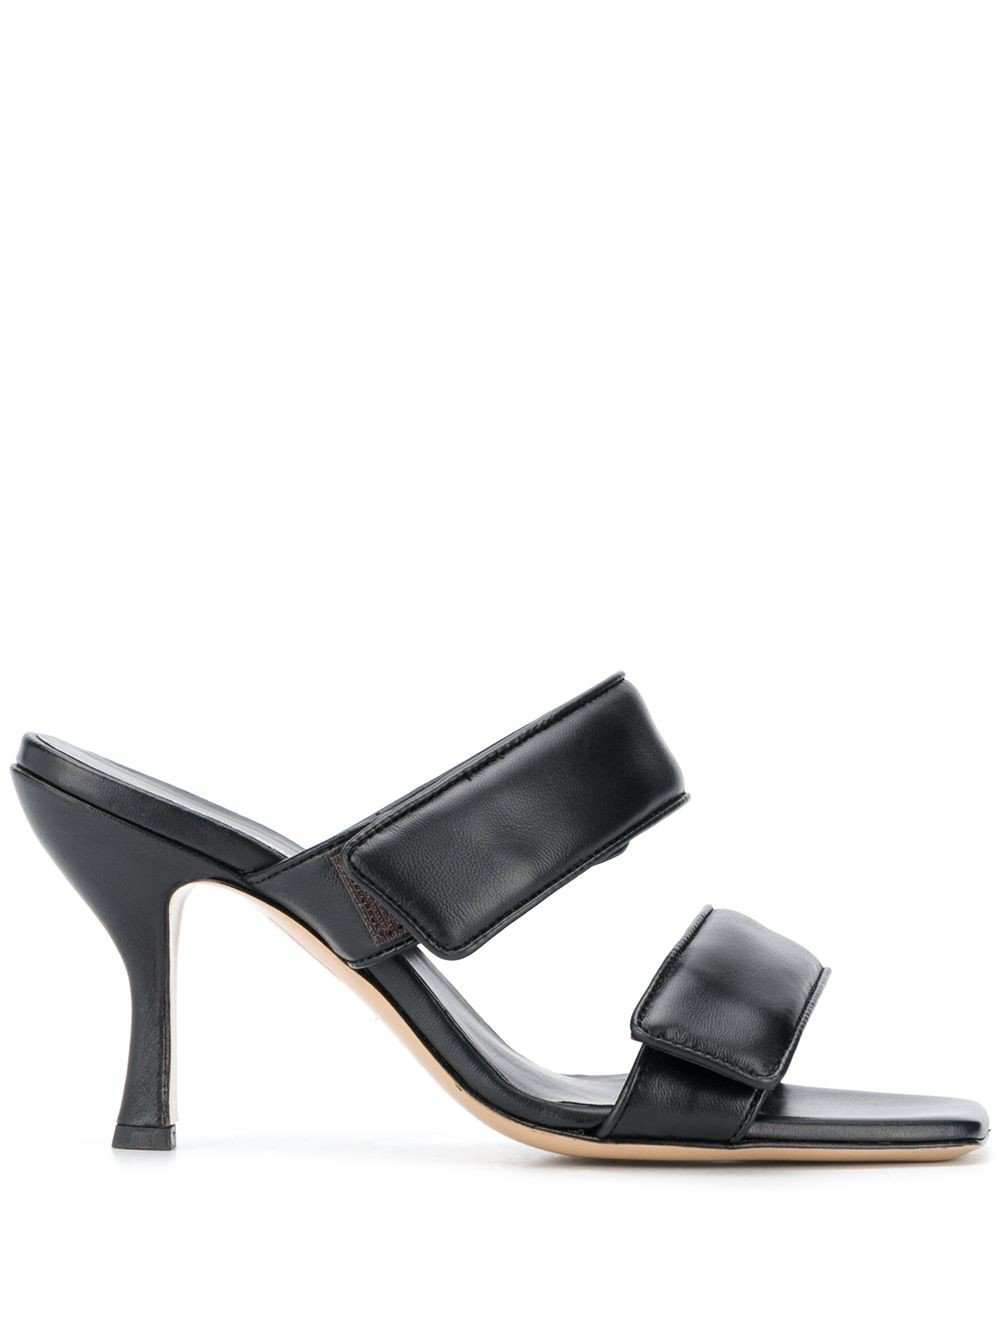 PERNI 80MM TWO STRAP SANDALS